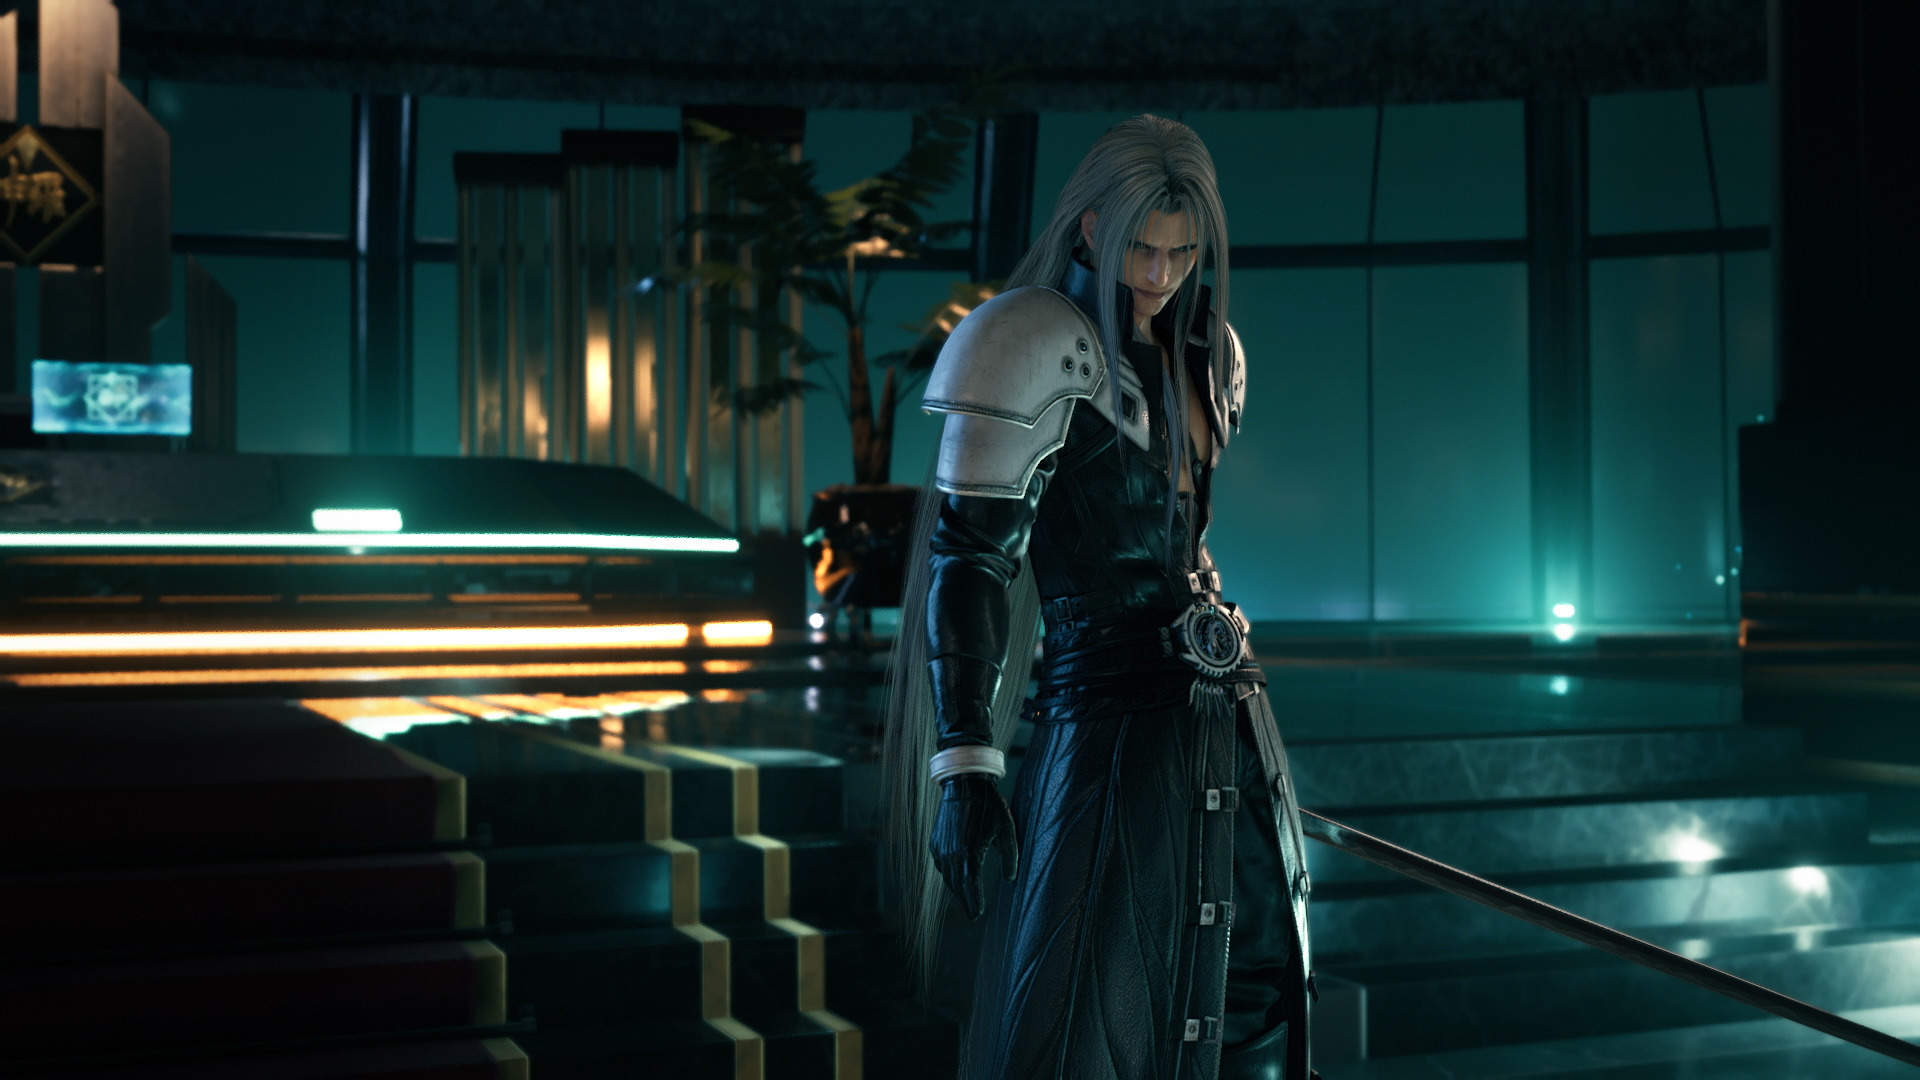 Final Fantasy 7 Remake And Avengers Hit With Delays Shacknews